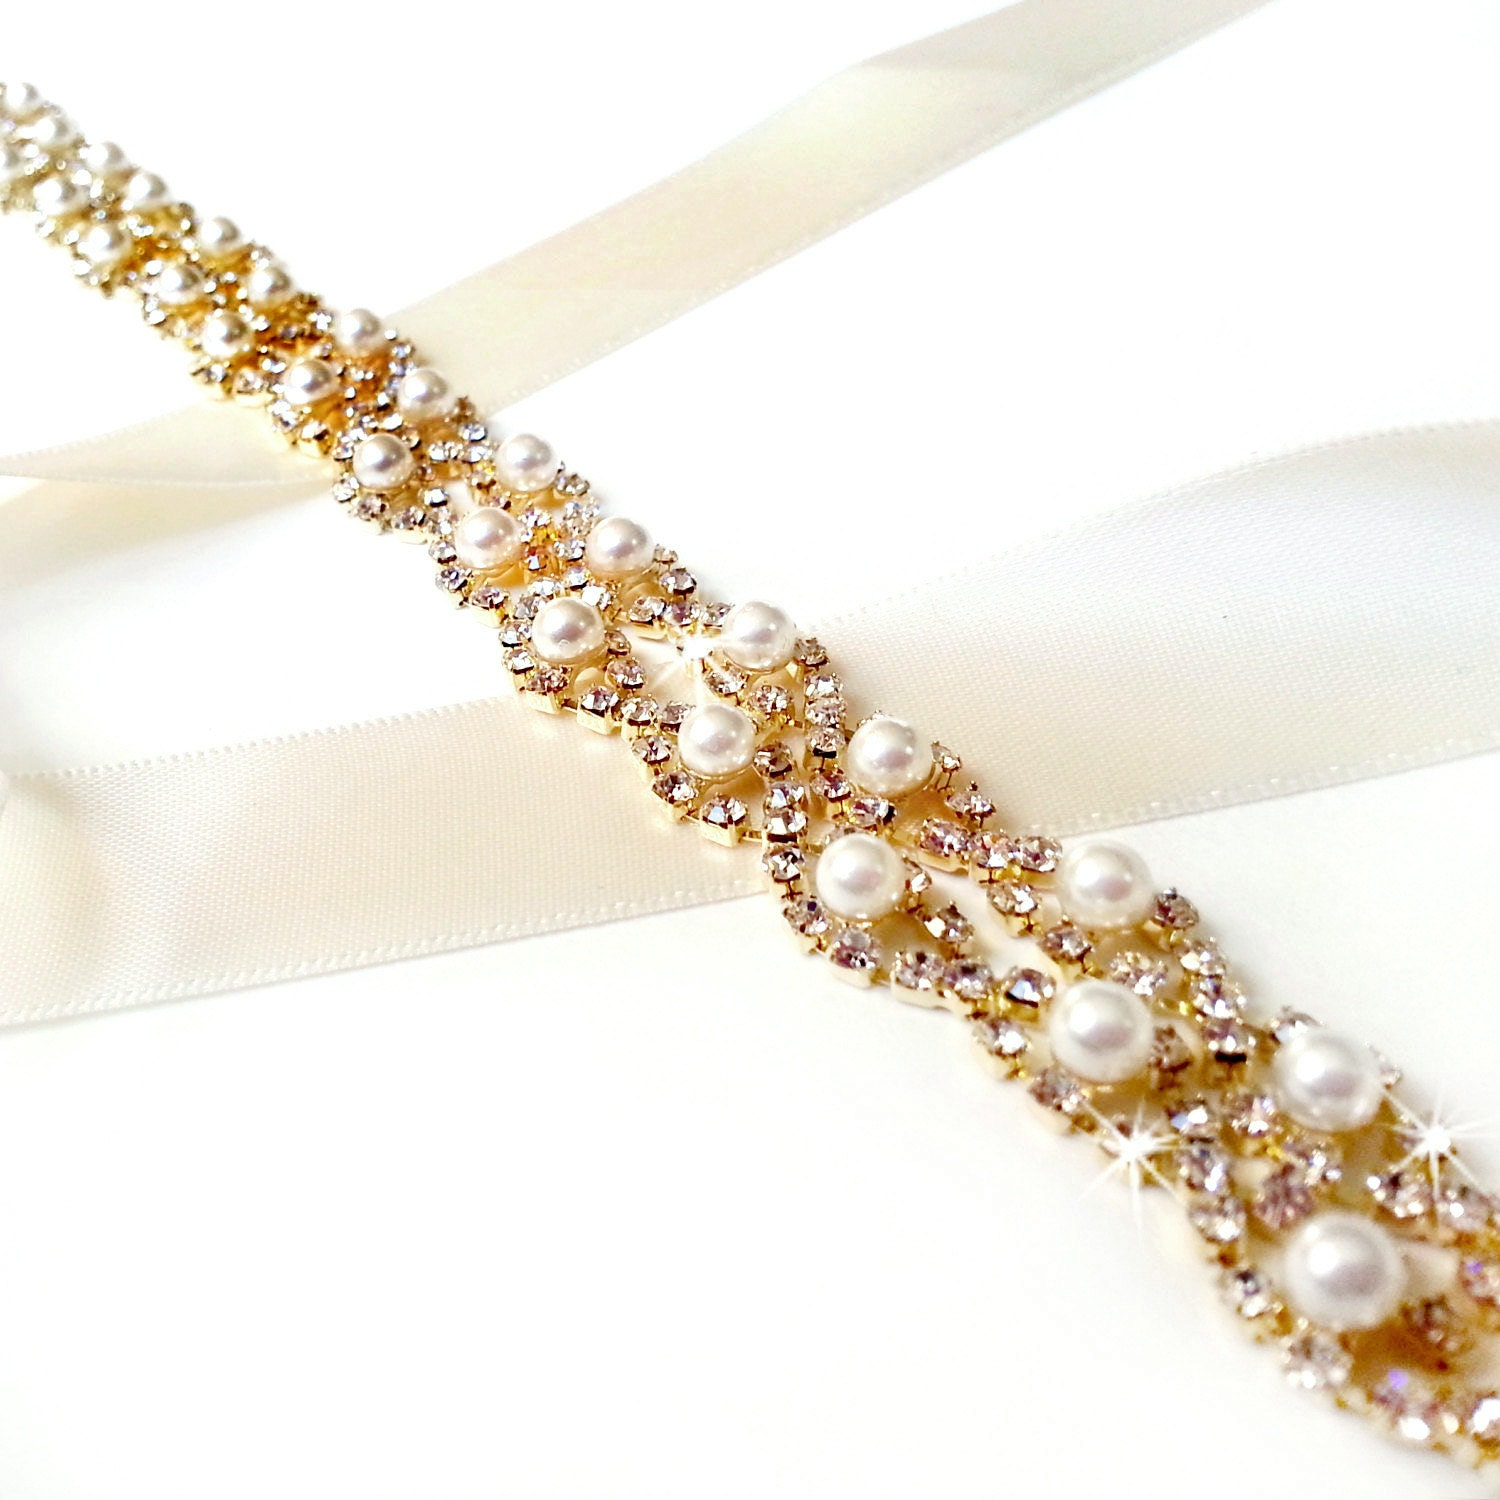 Sash Gold Crystal Pearl Weave Bridal Belt Sash in GOLD